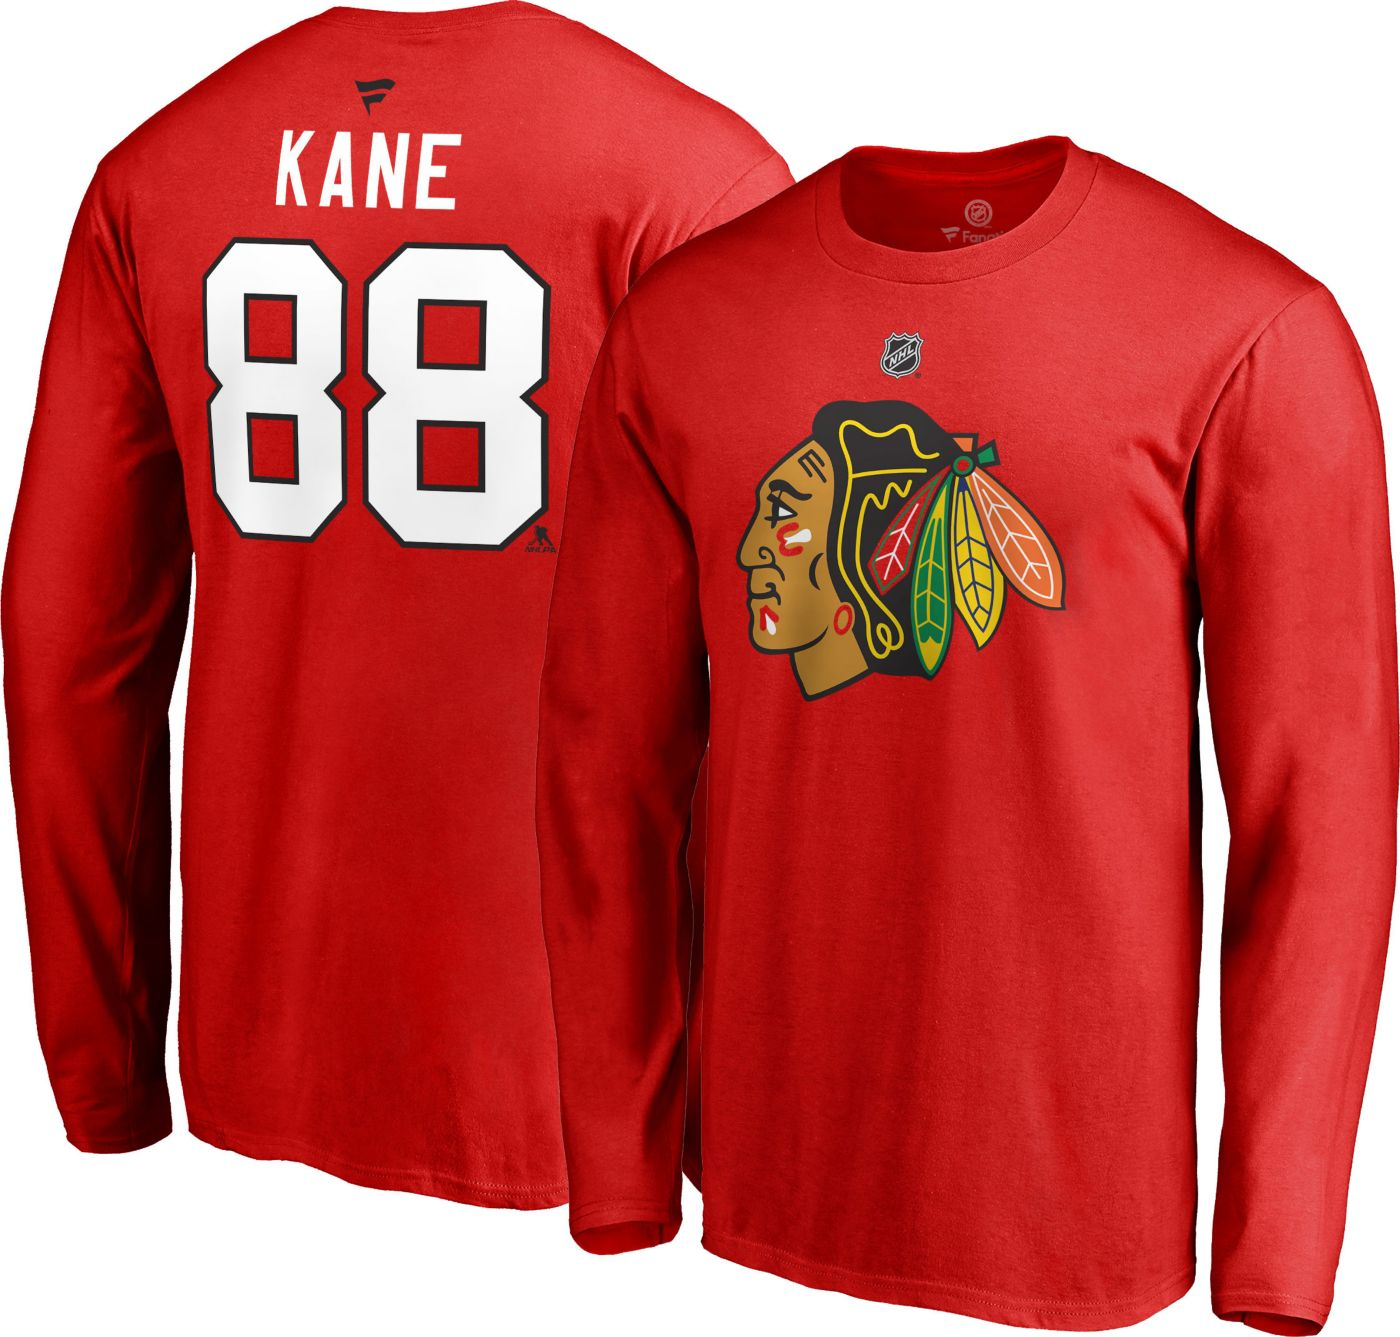 NHL Men's Chicago Blackhawks Patrick Kane #88 Red Long Sleeve Player Shirt